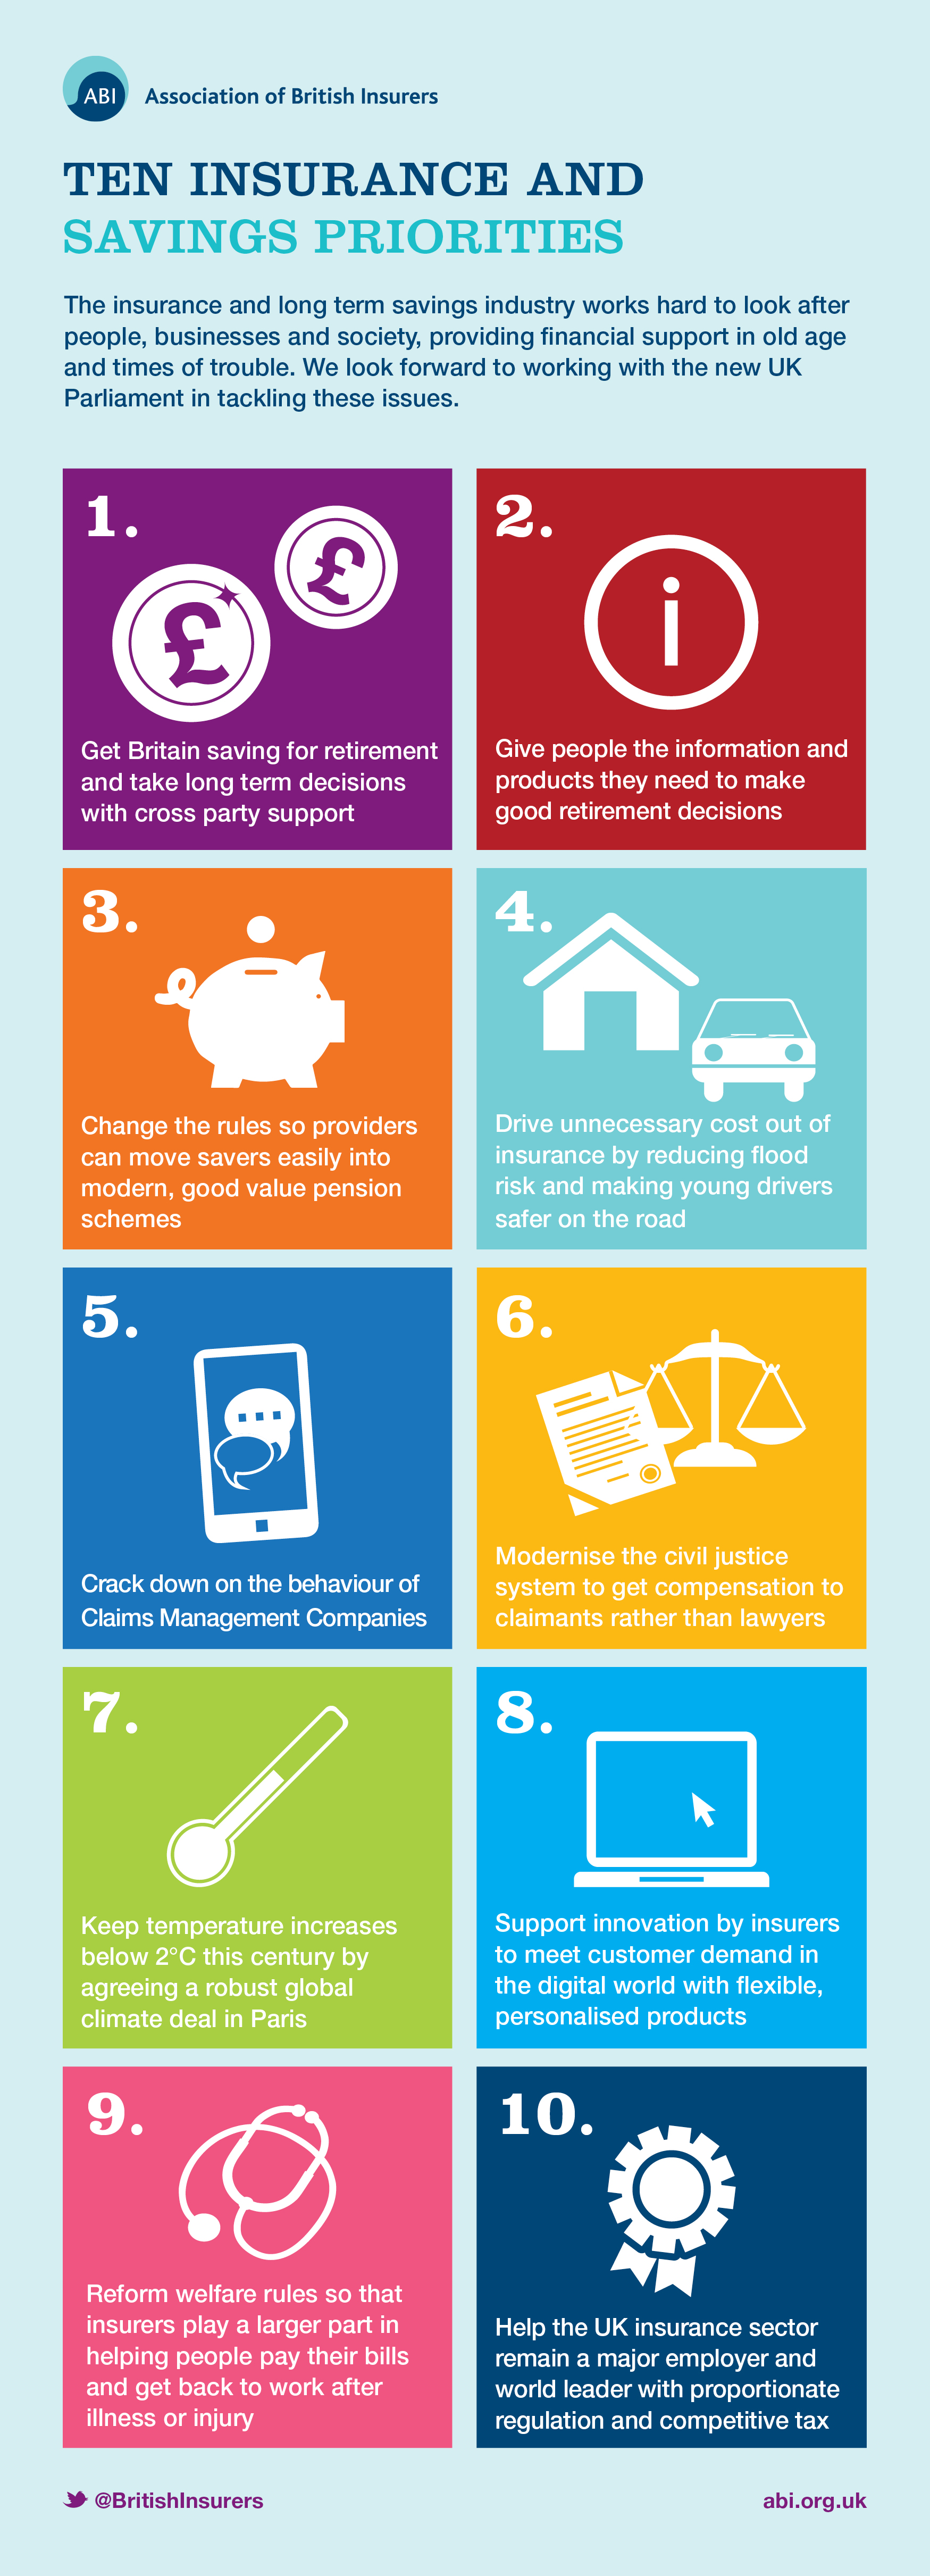 The ABI's top ten insurance and savings priorities for the next UK government.